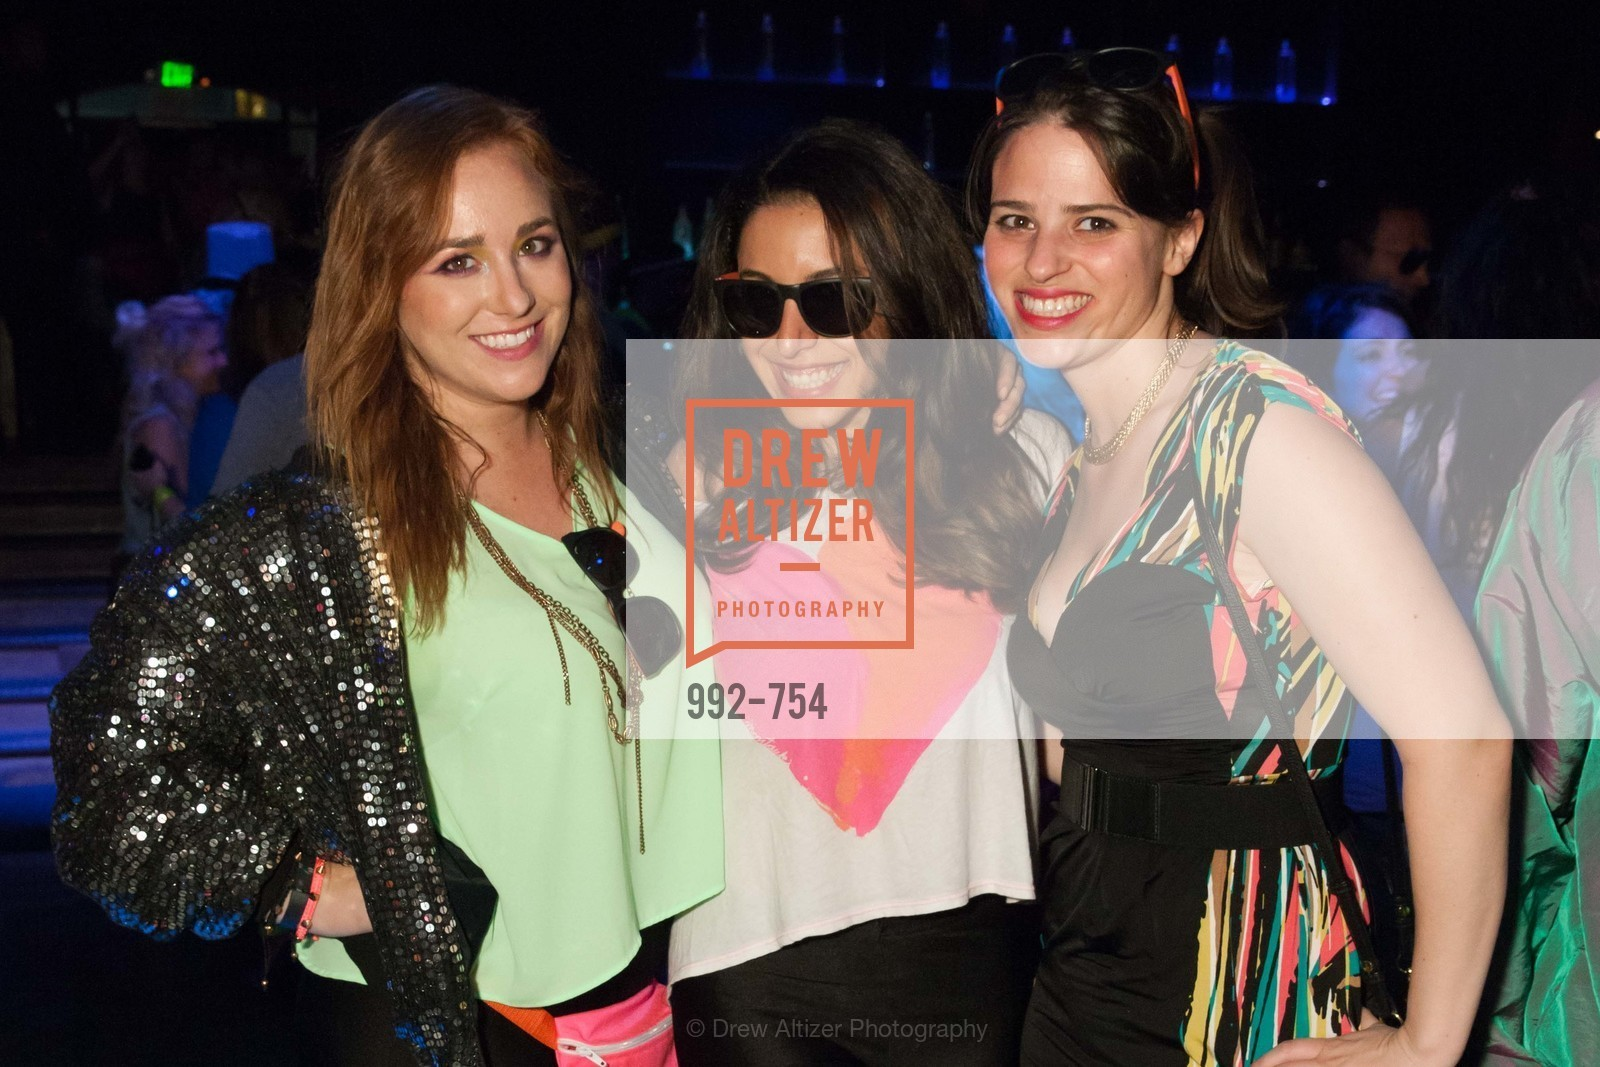 Andrea Marquis, Roxanna Aliavadi, Bailey Douglass, SPINSTERS OF SAN FRANCISCO Party Like It's 1985 Charity Party, US, May 29th, 2015,Drew Altizer, Drew Altizer Photography, full-service agency, private events, San Francisco photographer, photographer california